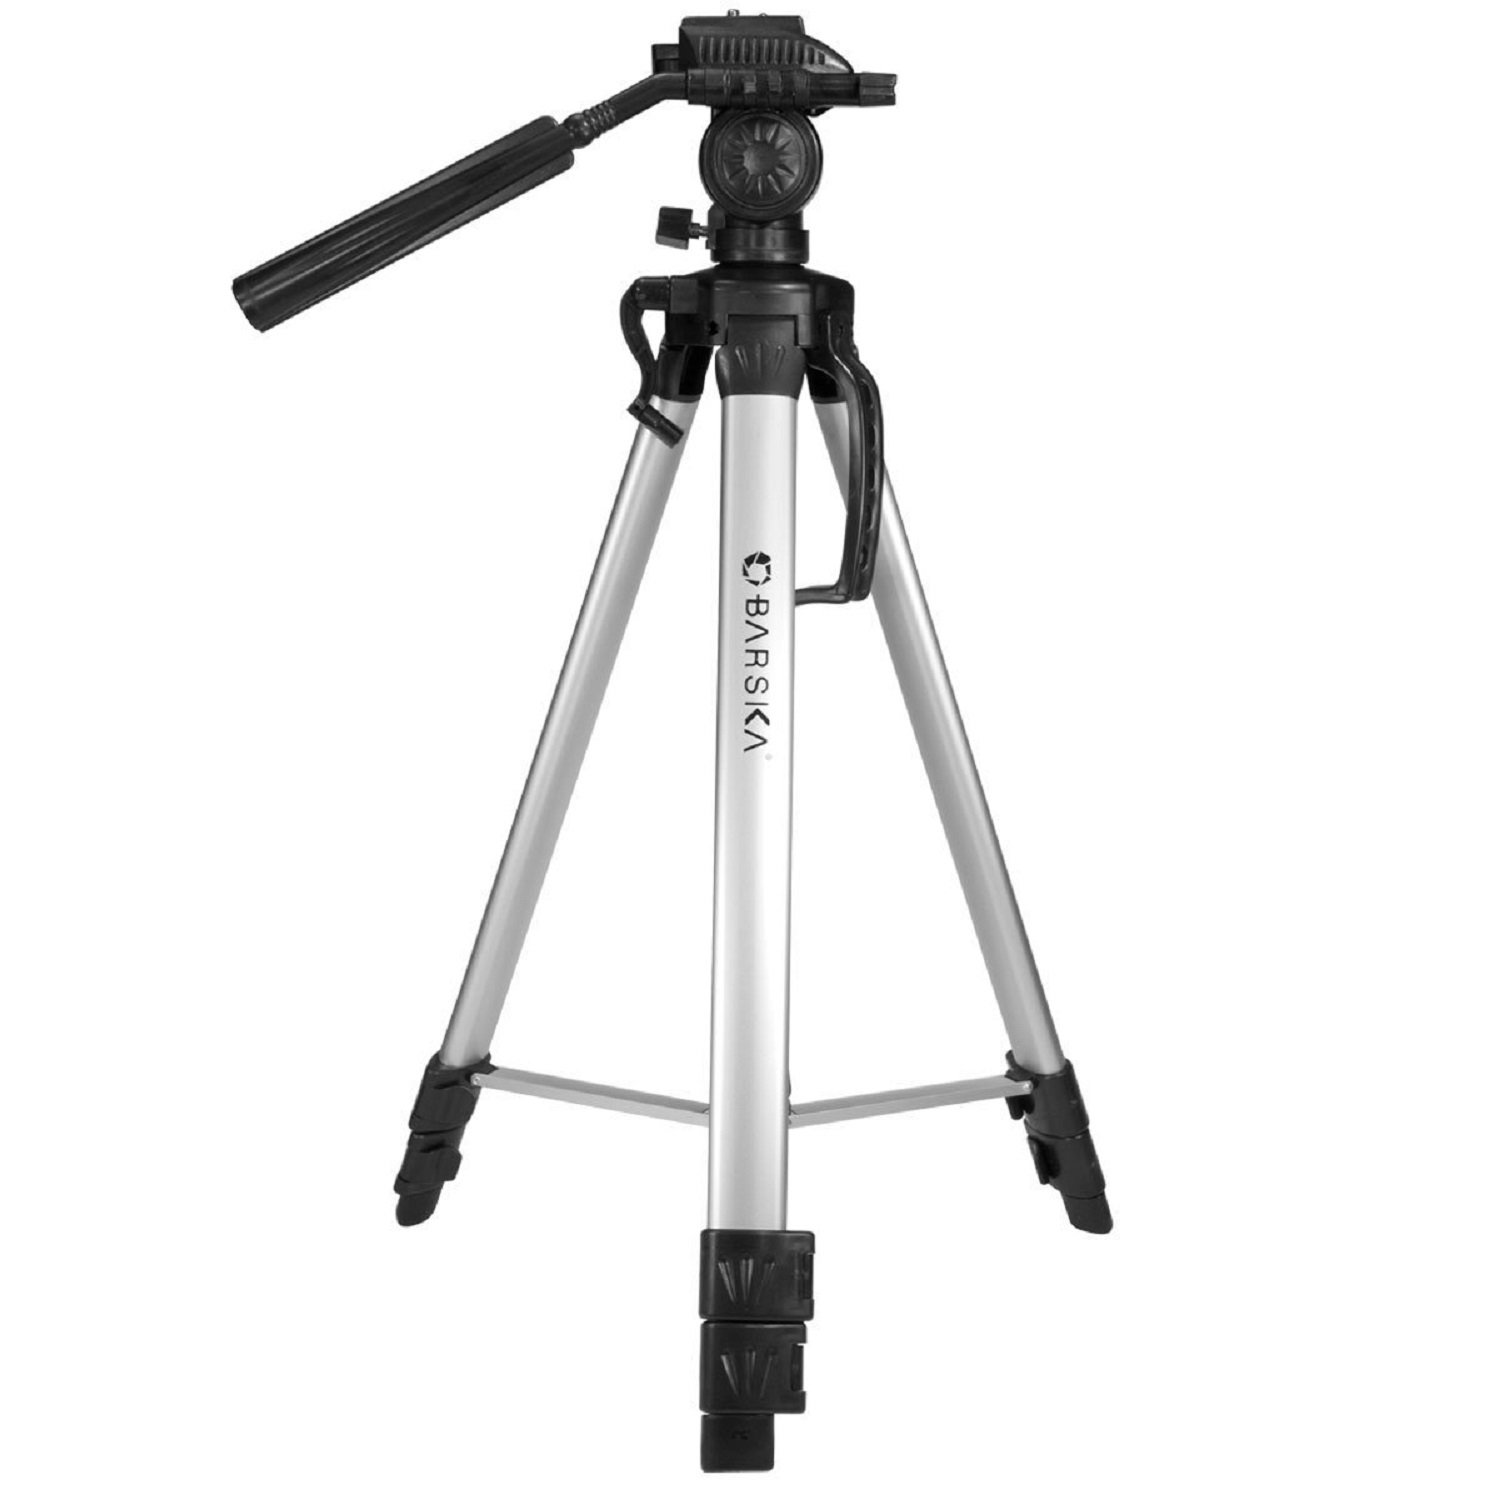 """Barska Deluxe Tripod Extendable to 63.4"""" w/Carrying Case"""